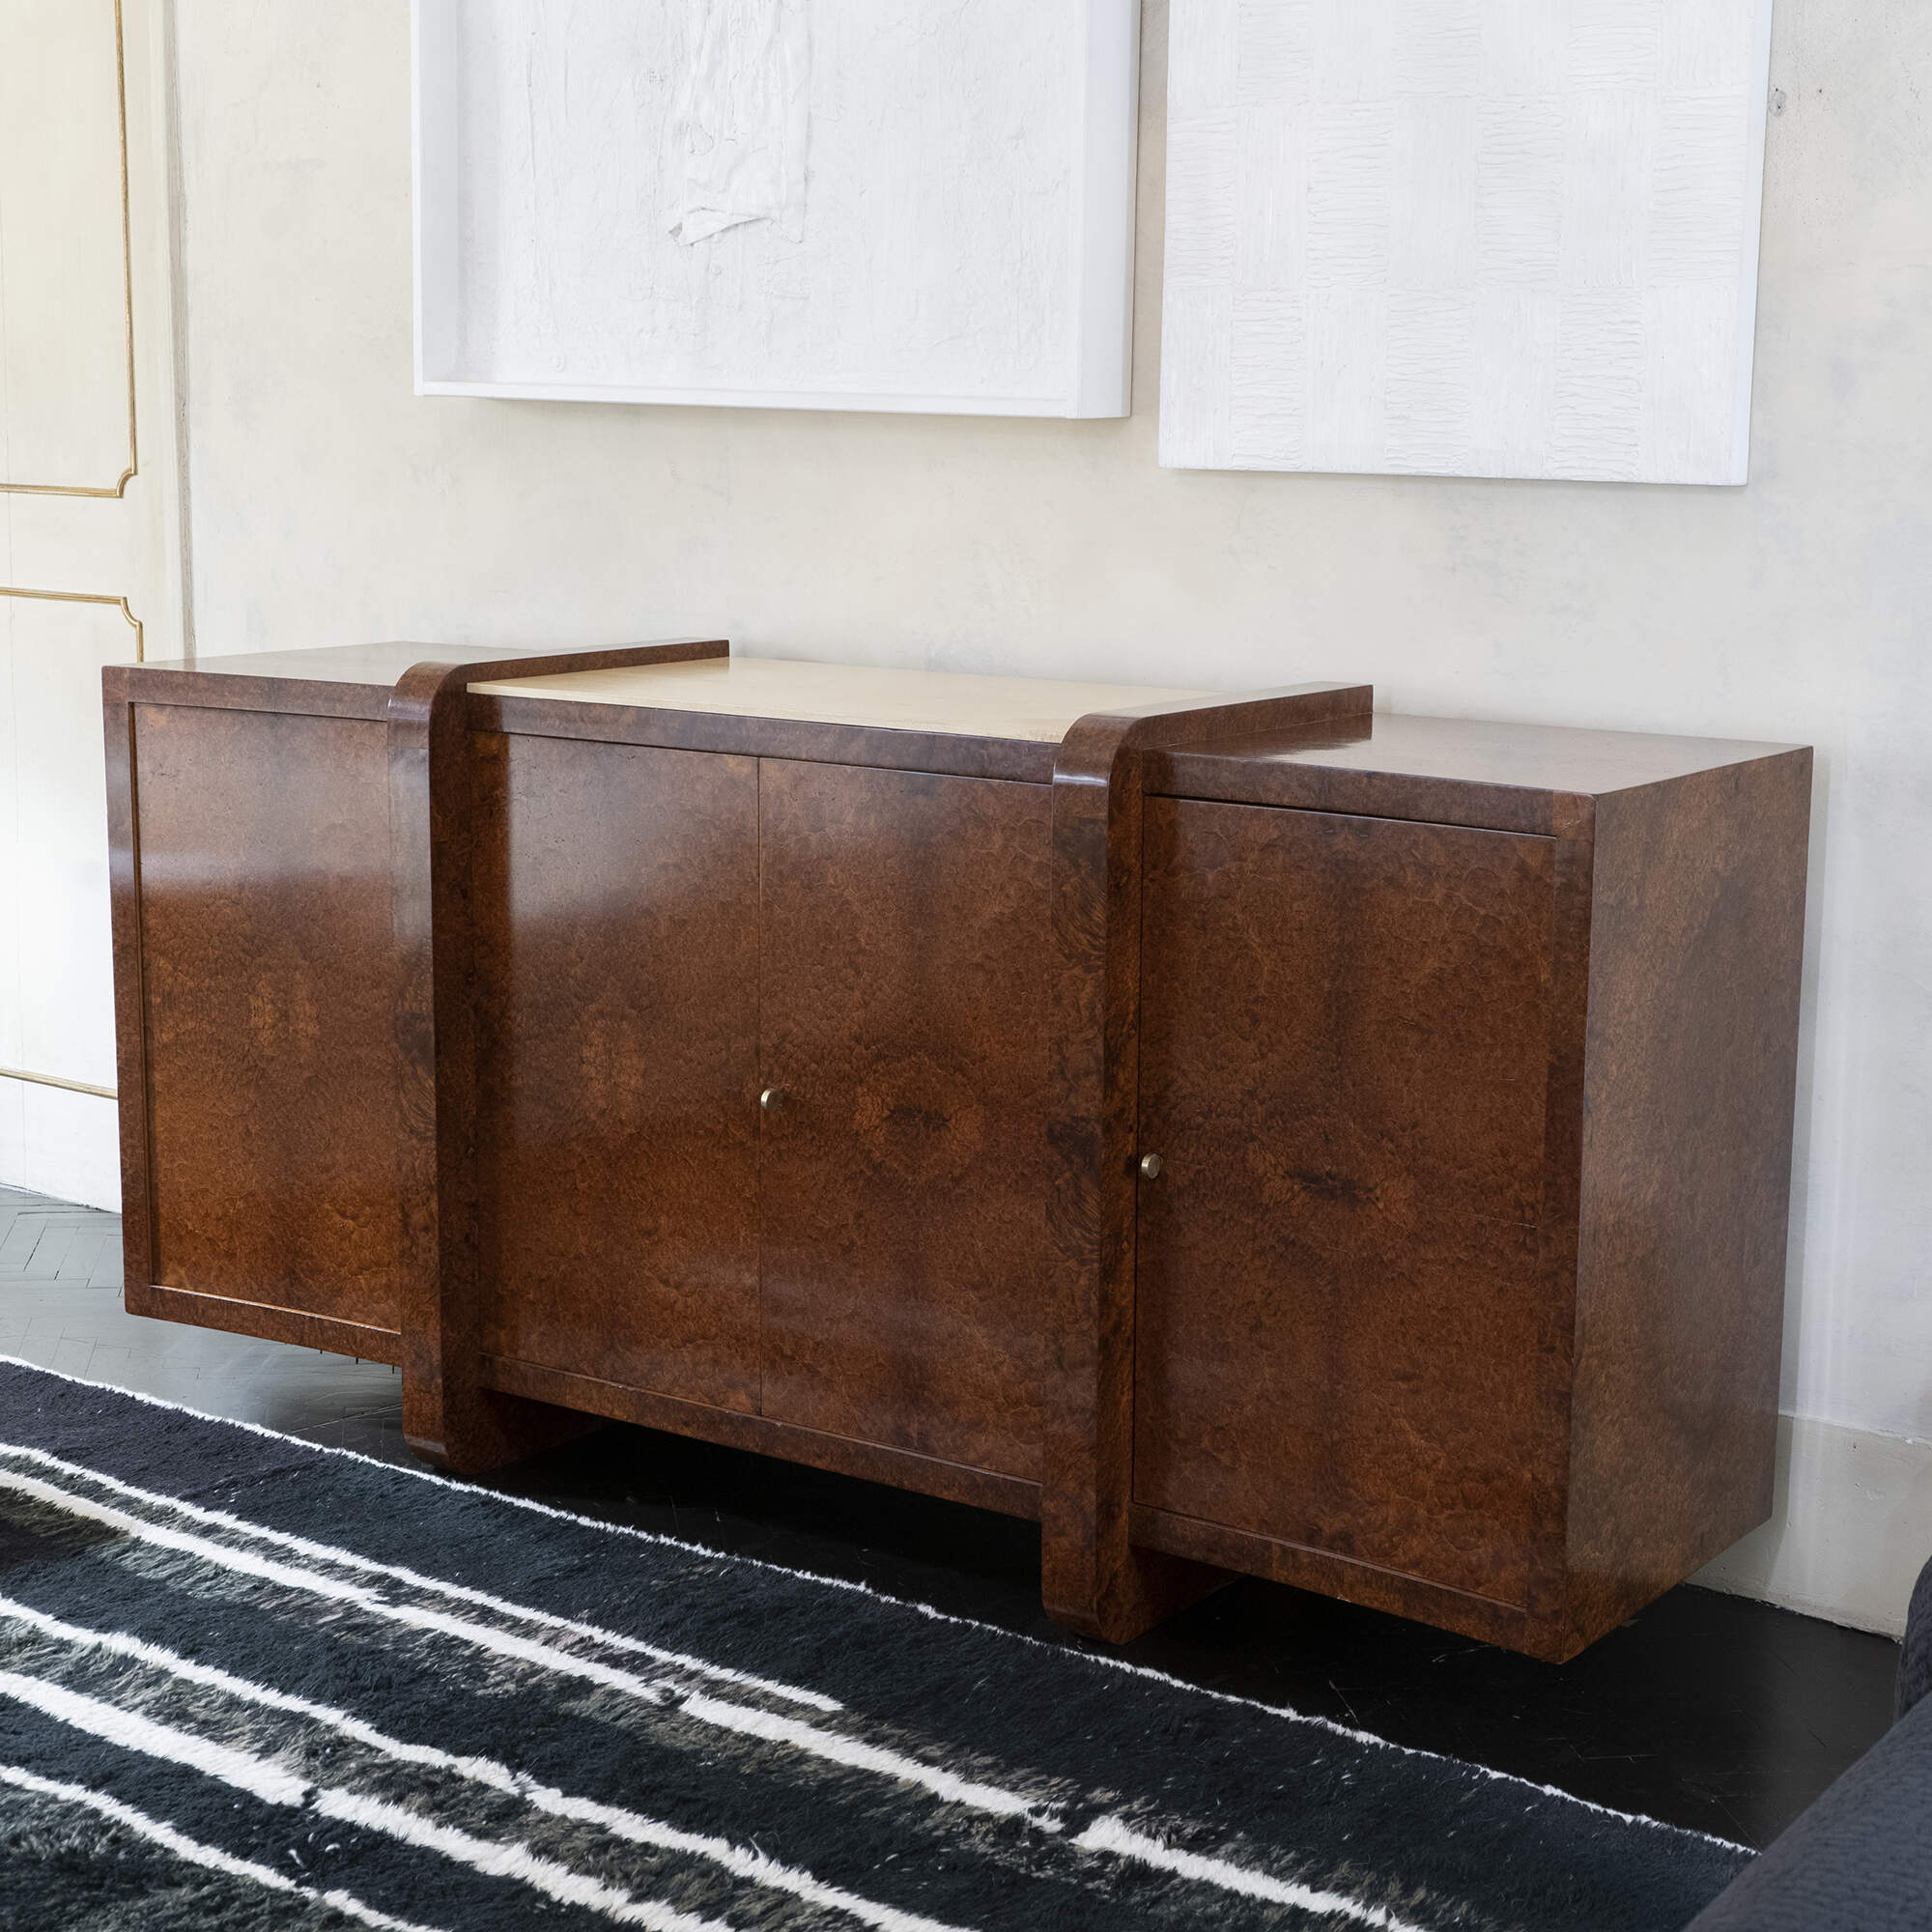 1930s French Sideboard in Thuya Burl Wood